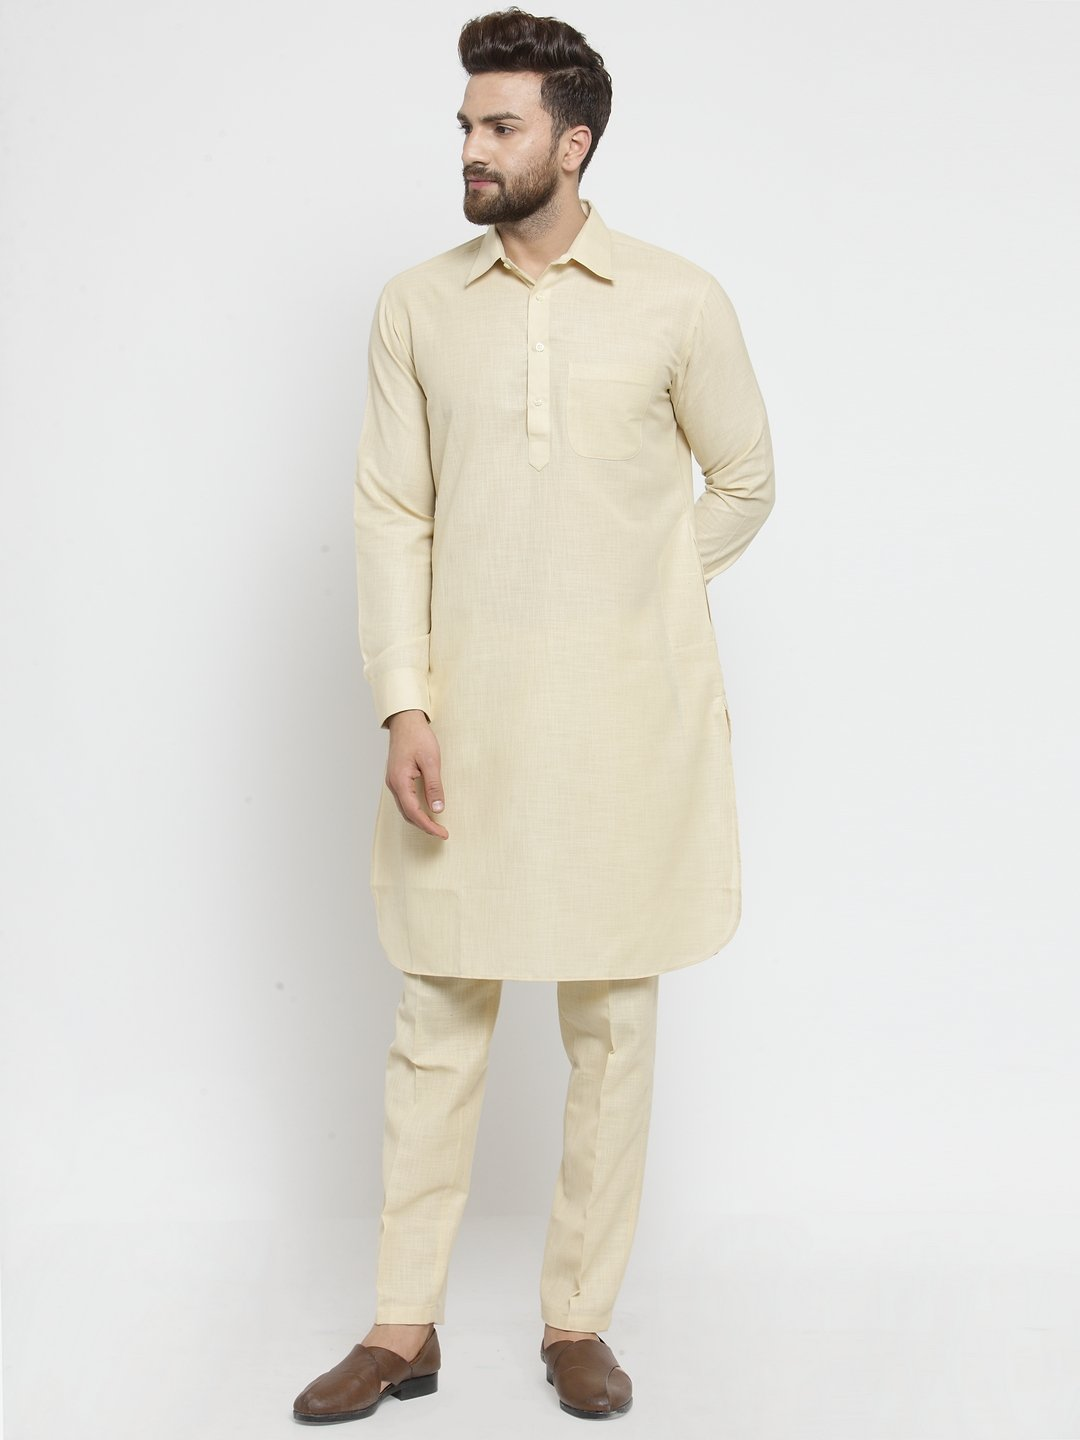 Designer Beige Pathani Lenin Kurta with Pants for a Royal look by TREEMODA